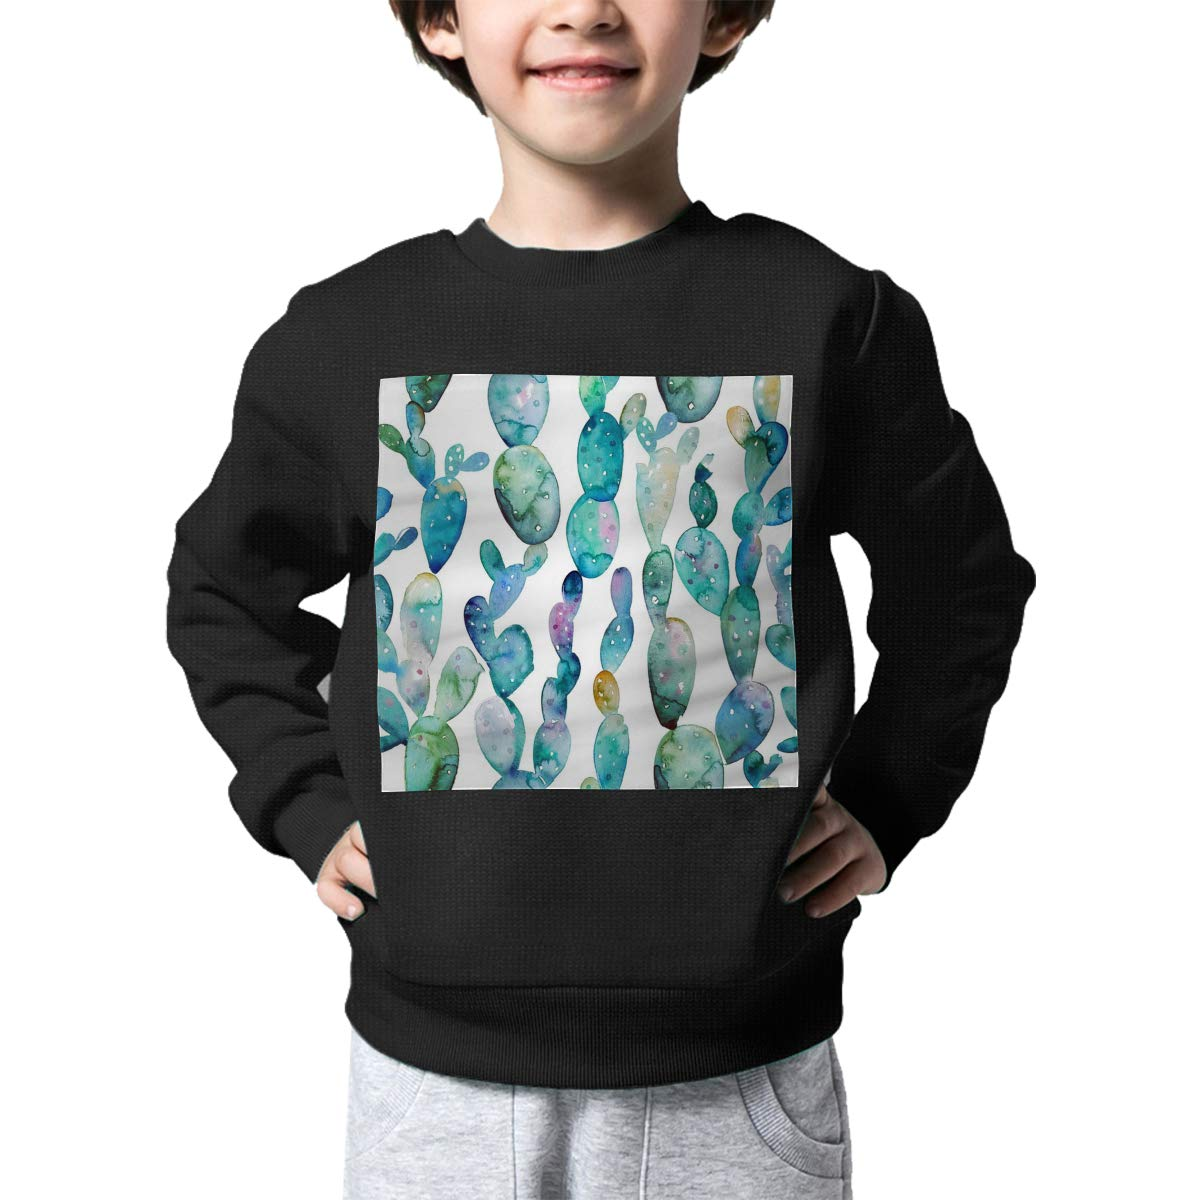 Watercolor Cactus Pattern Print Baby Girls Kids Crew Neck Sweater Long Sleeve Cute Knit Top Blouse